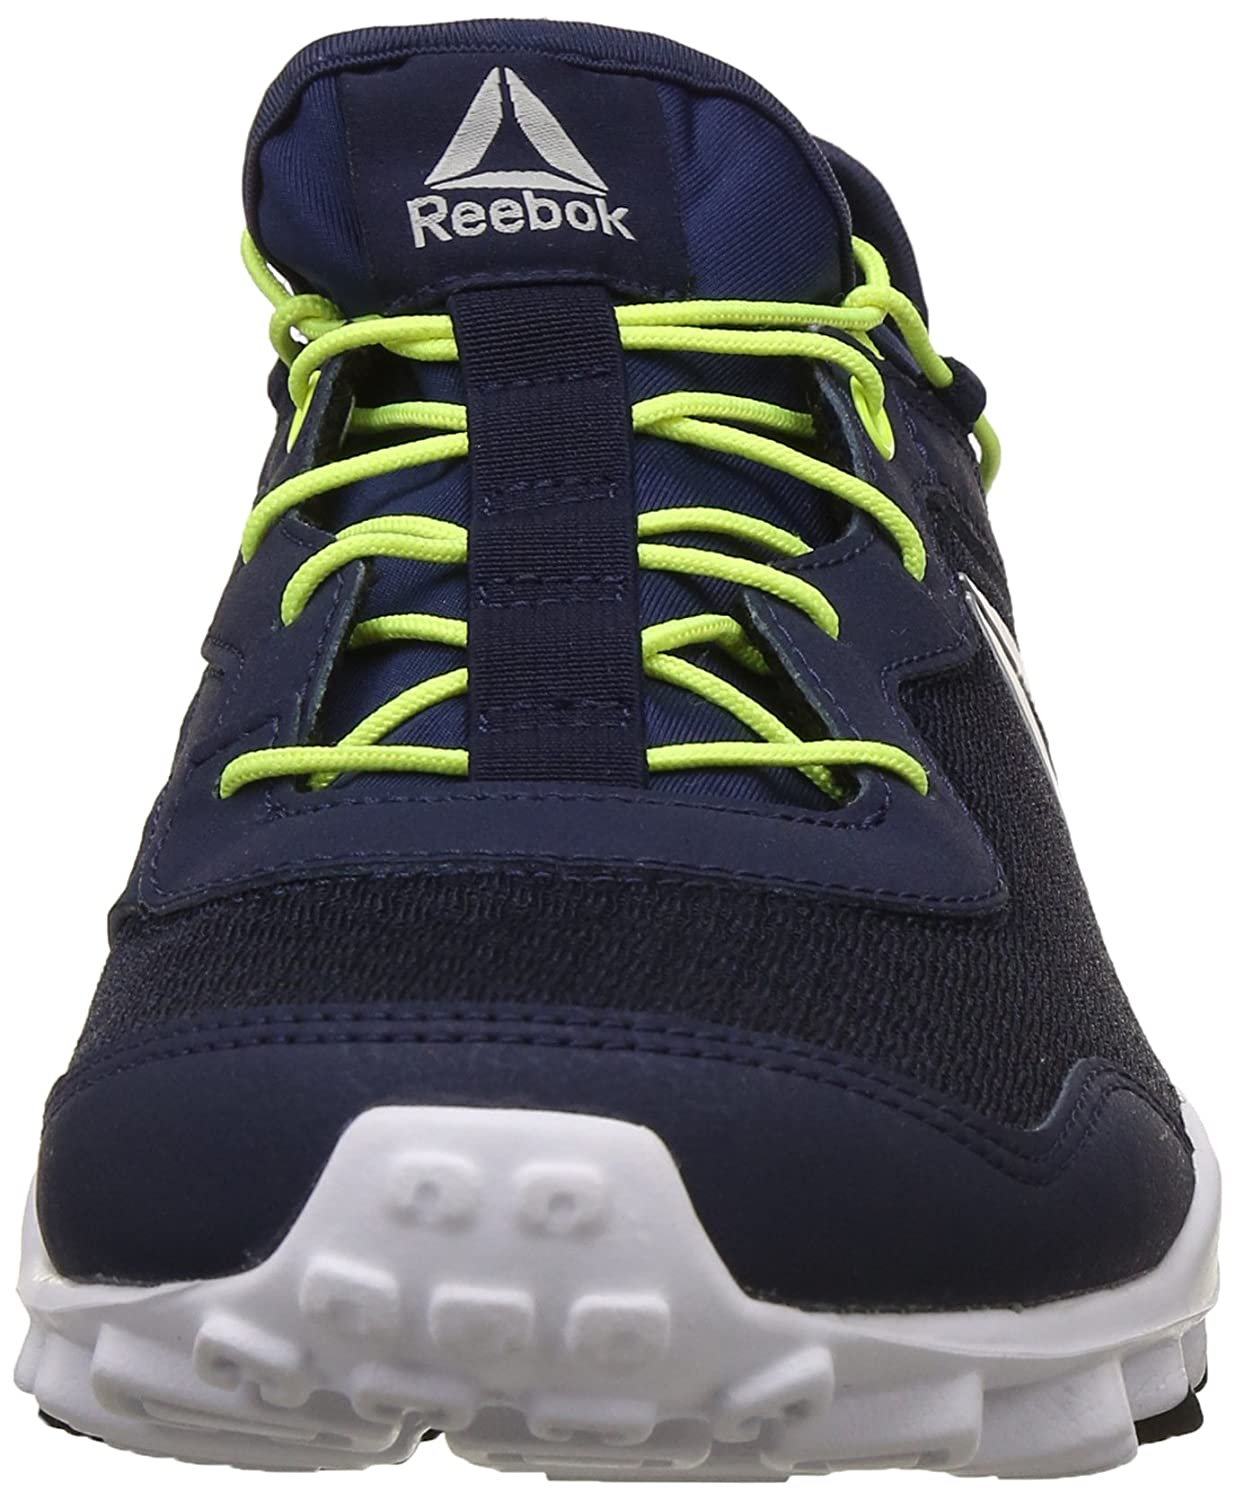 32da3aba09f4 Reebok Men s One Rush Flex Running Shoes  Buy Online at Low Prices in India  - Amazon.in